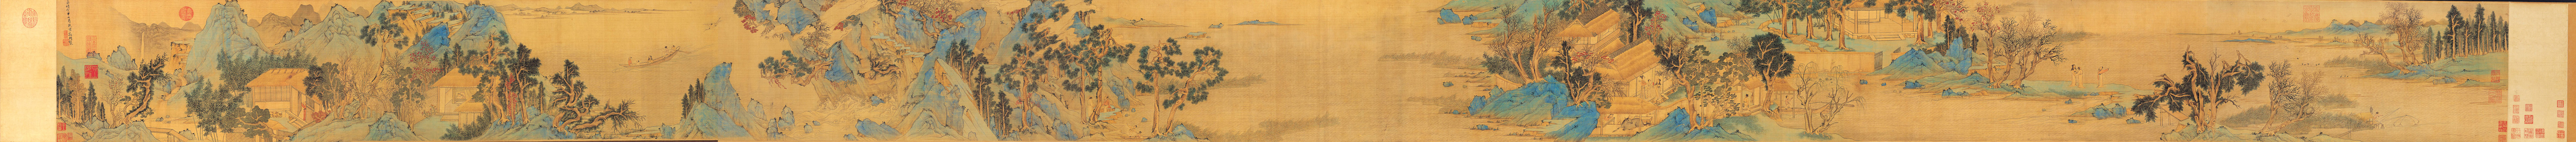 Wen Zhengming: Red Cliff in Zhao Boju's Style